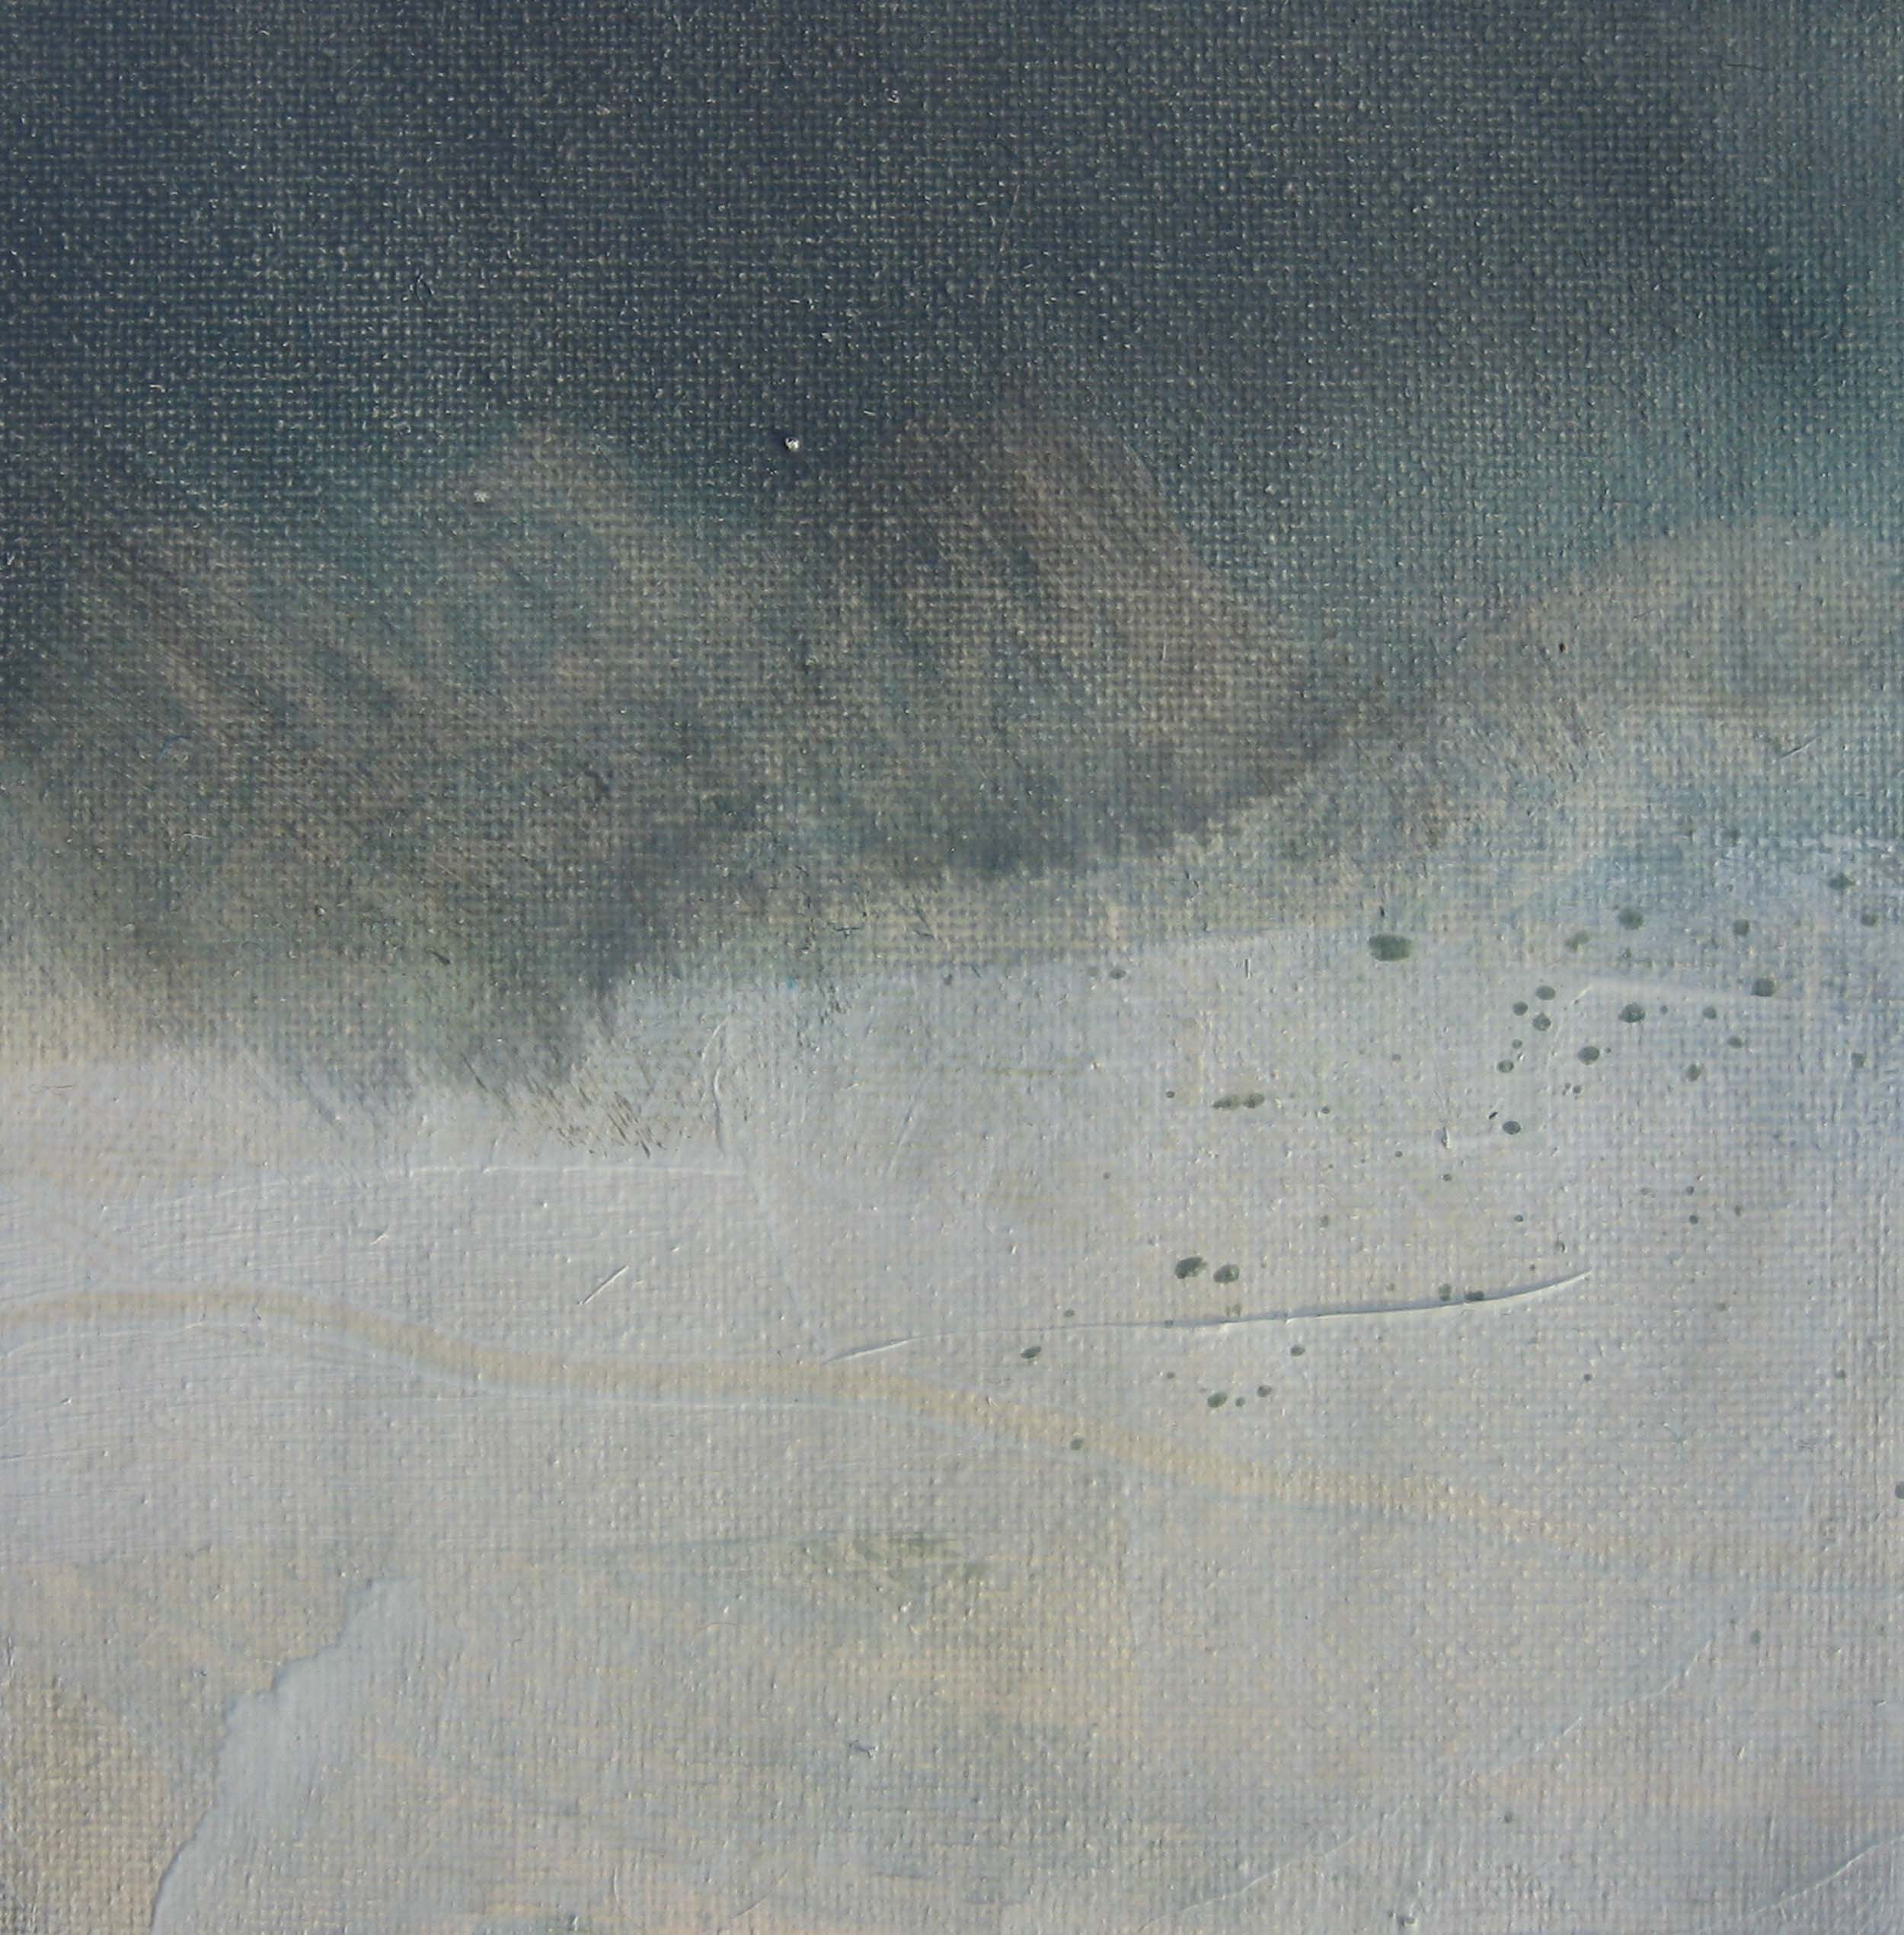 Leah Beggs 2008 - Rain Over the Twelve Pins - Oil on Unstretched Canvas -15 x 15cm_sml.jpg